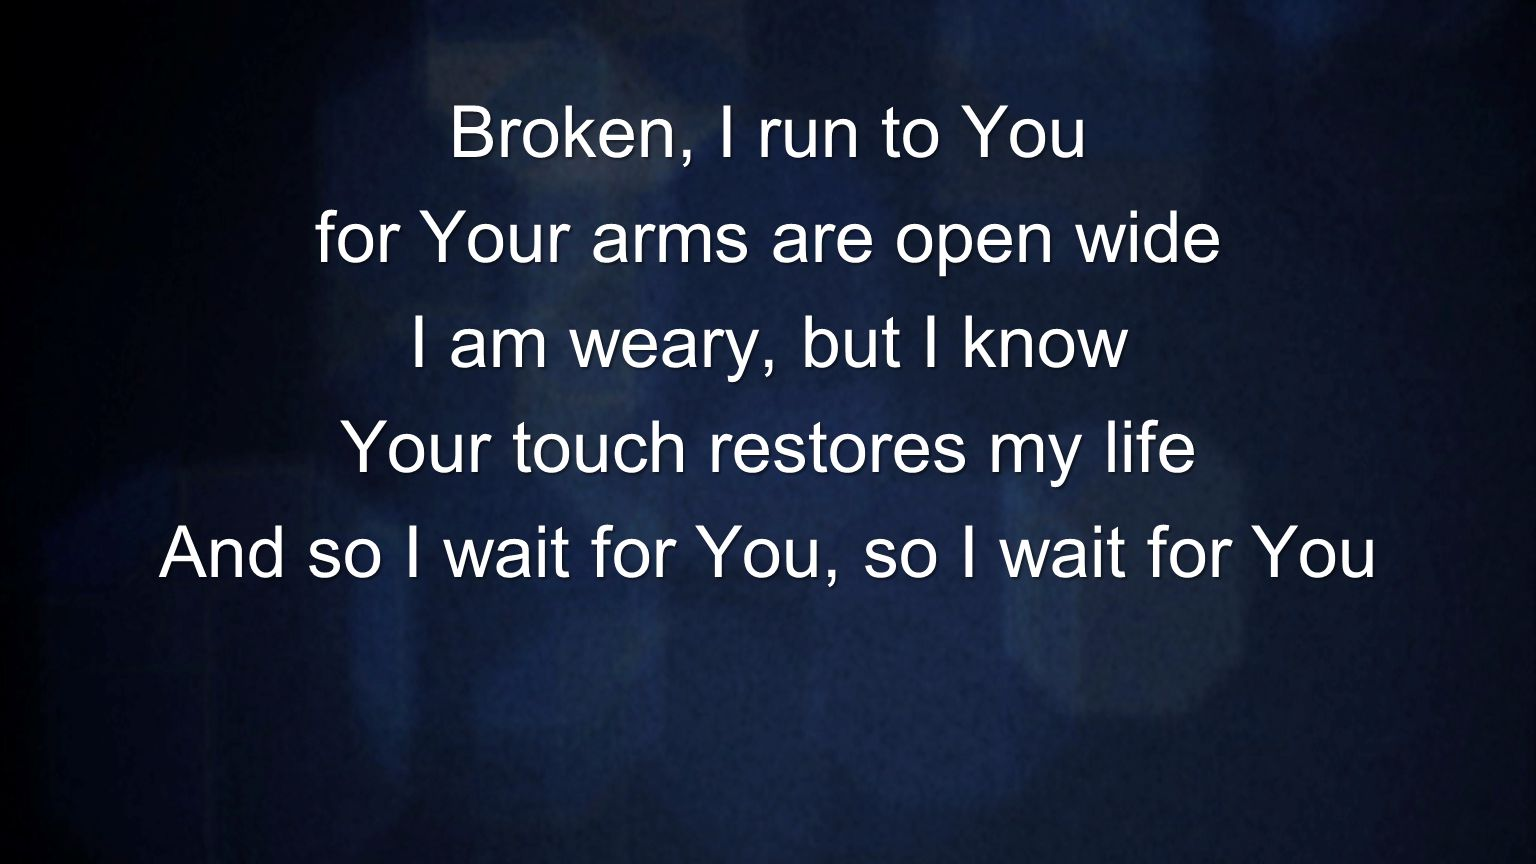 Broken, I run to You for Your arms are open wide I am weary, but I know Your touch restores my life And so I wait for You, so I wait for You